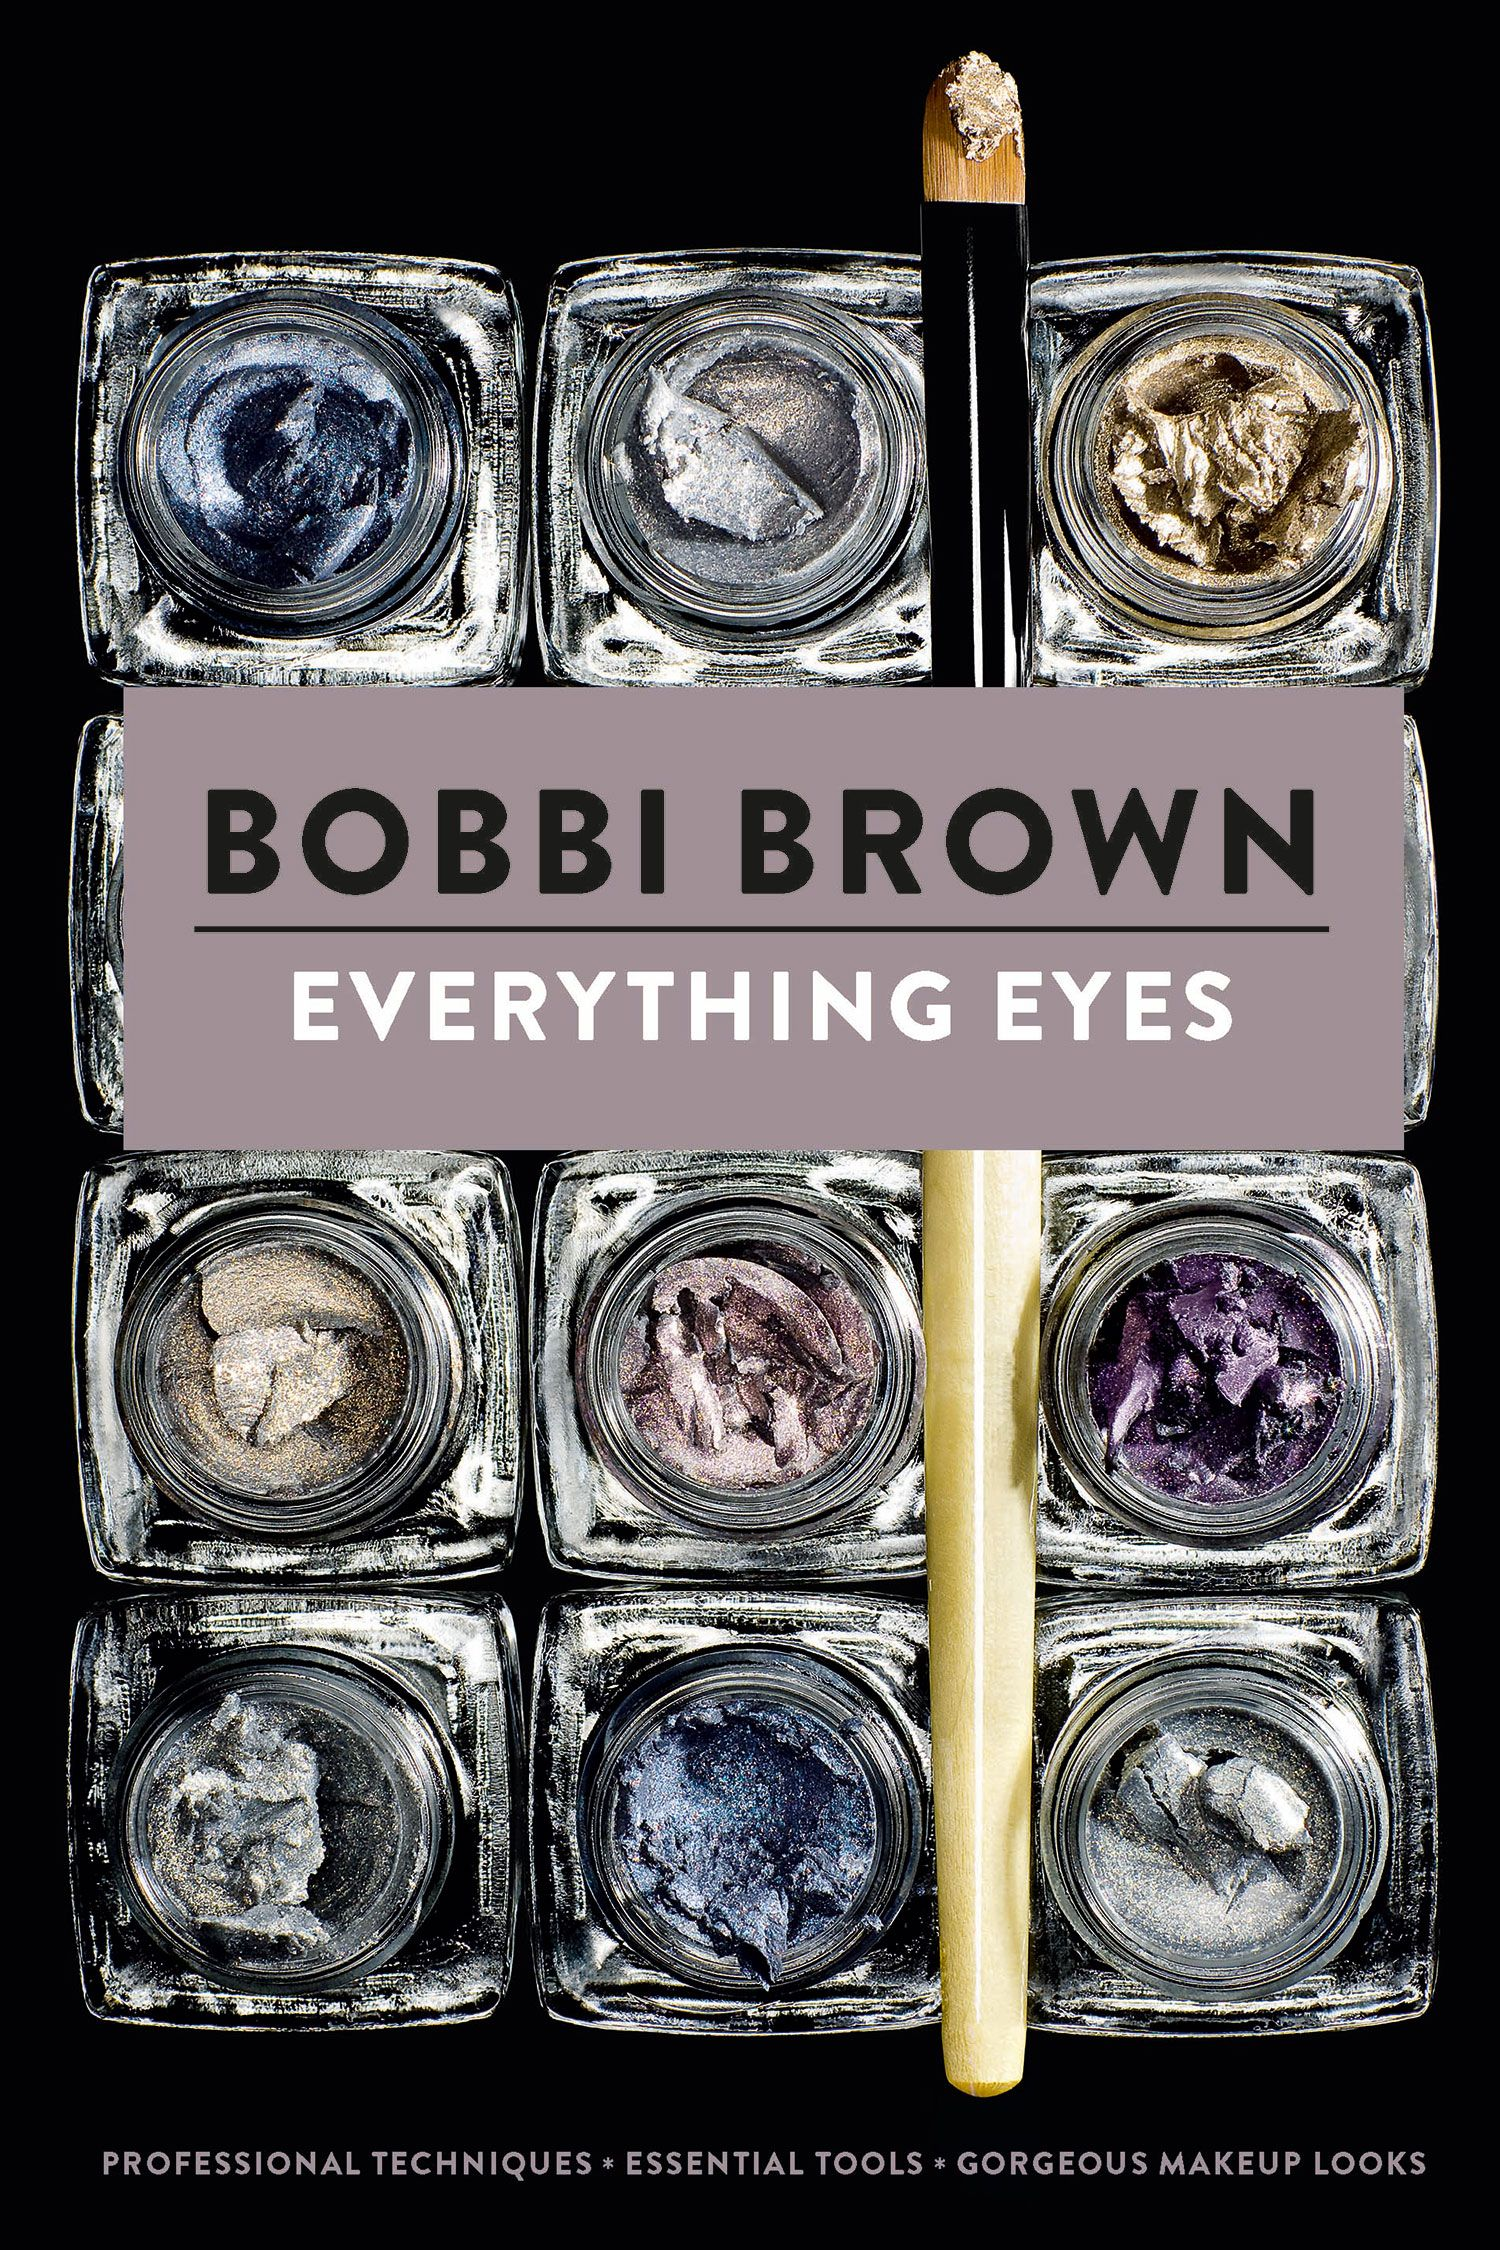 5 Things We Learned About Eyes From Bobbi Brown